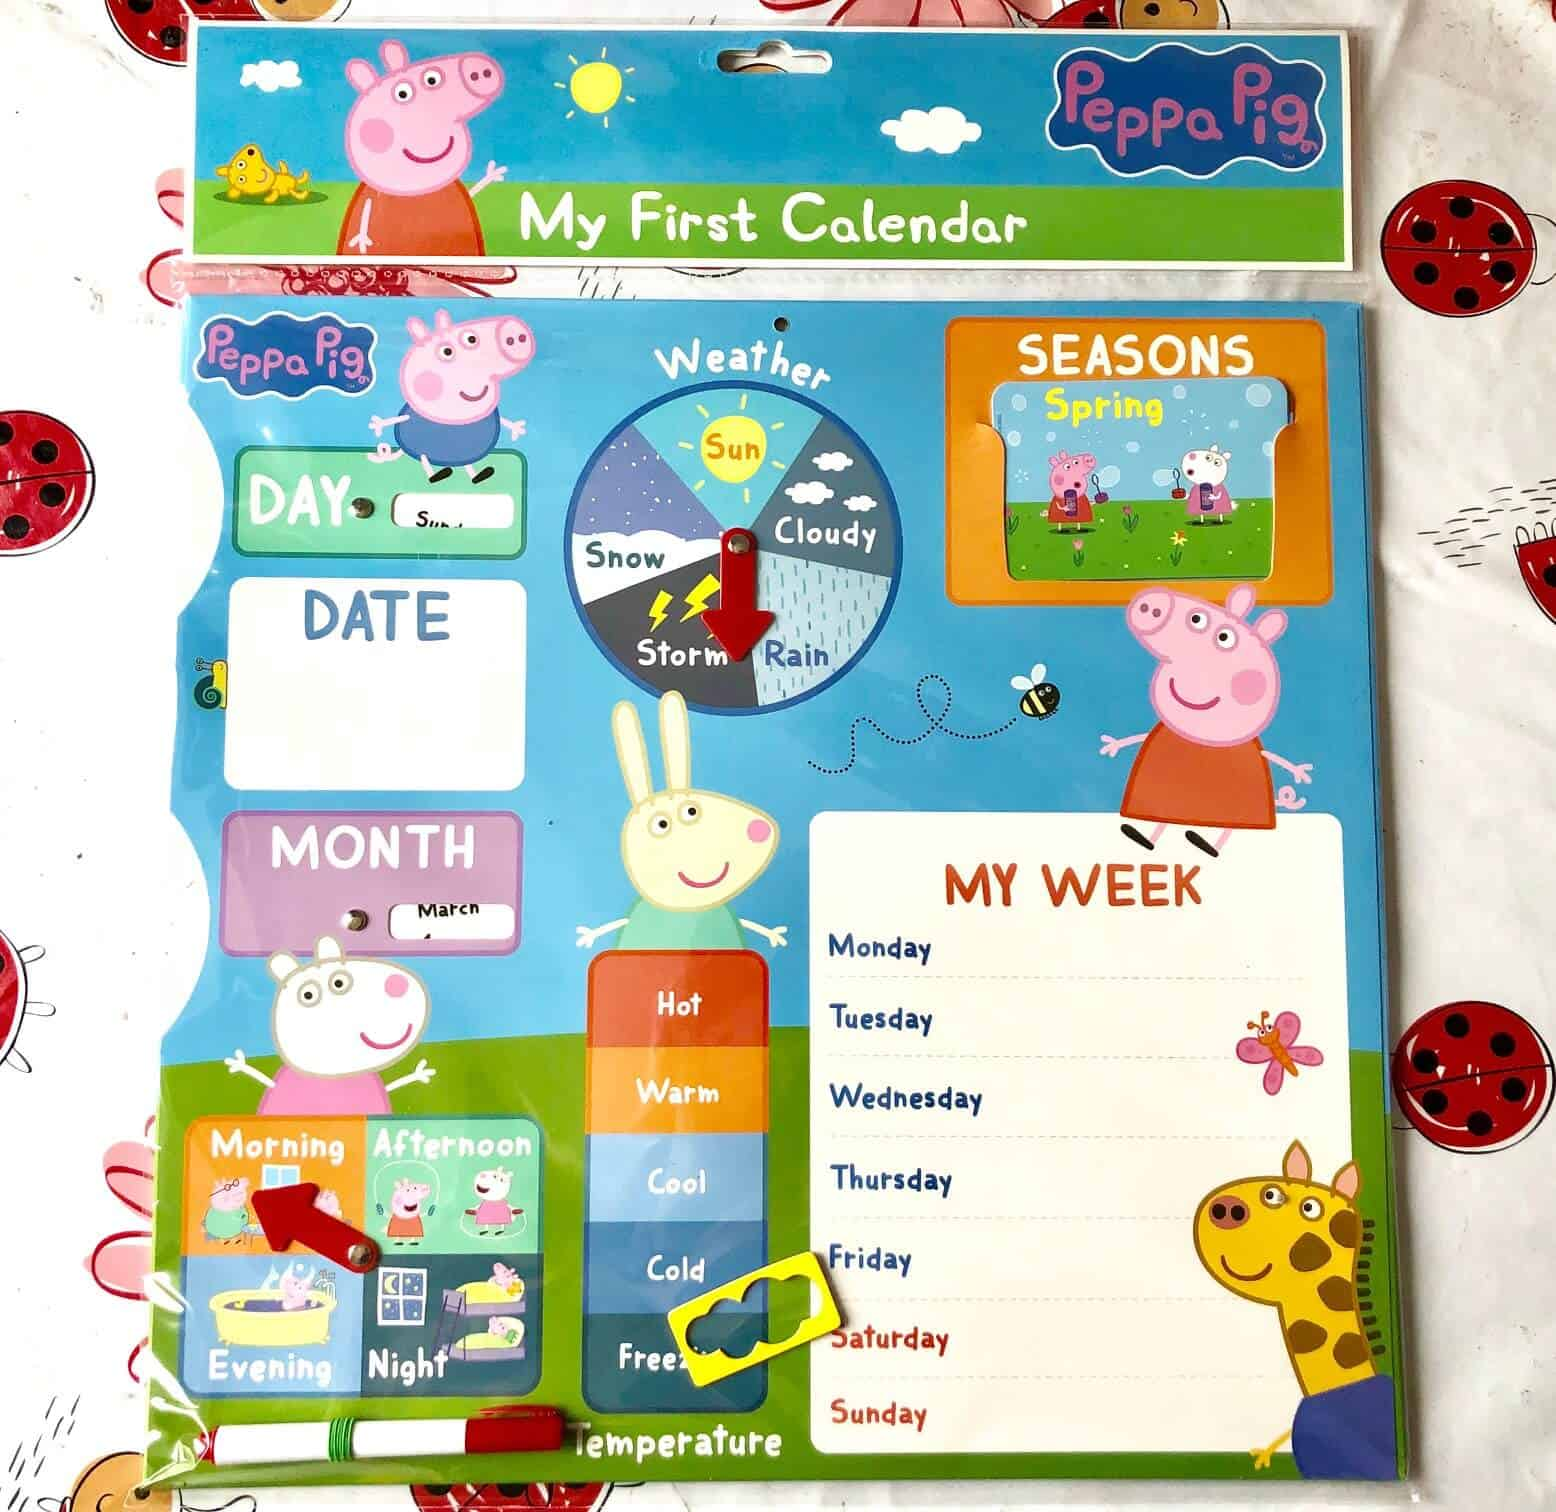 Peppa Pig: My First Calendar